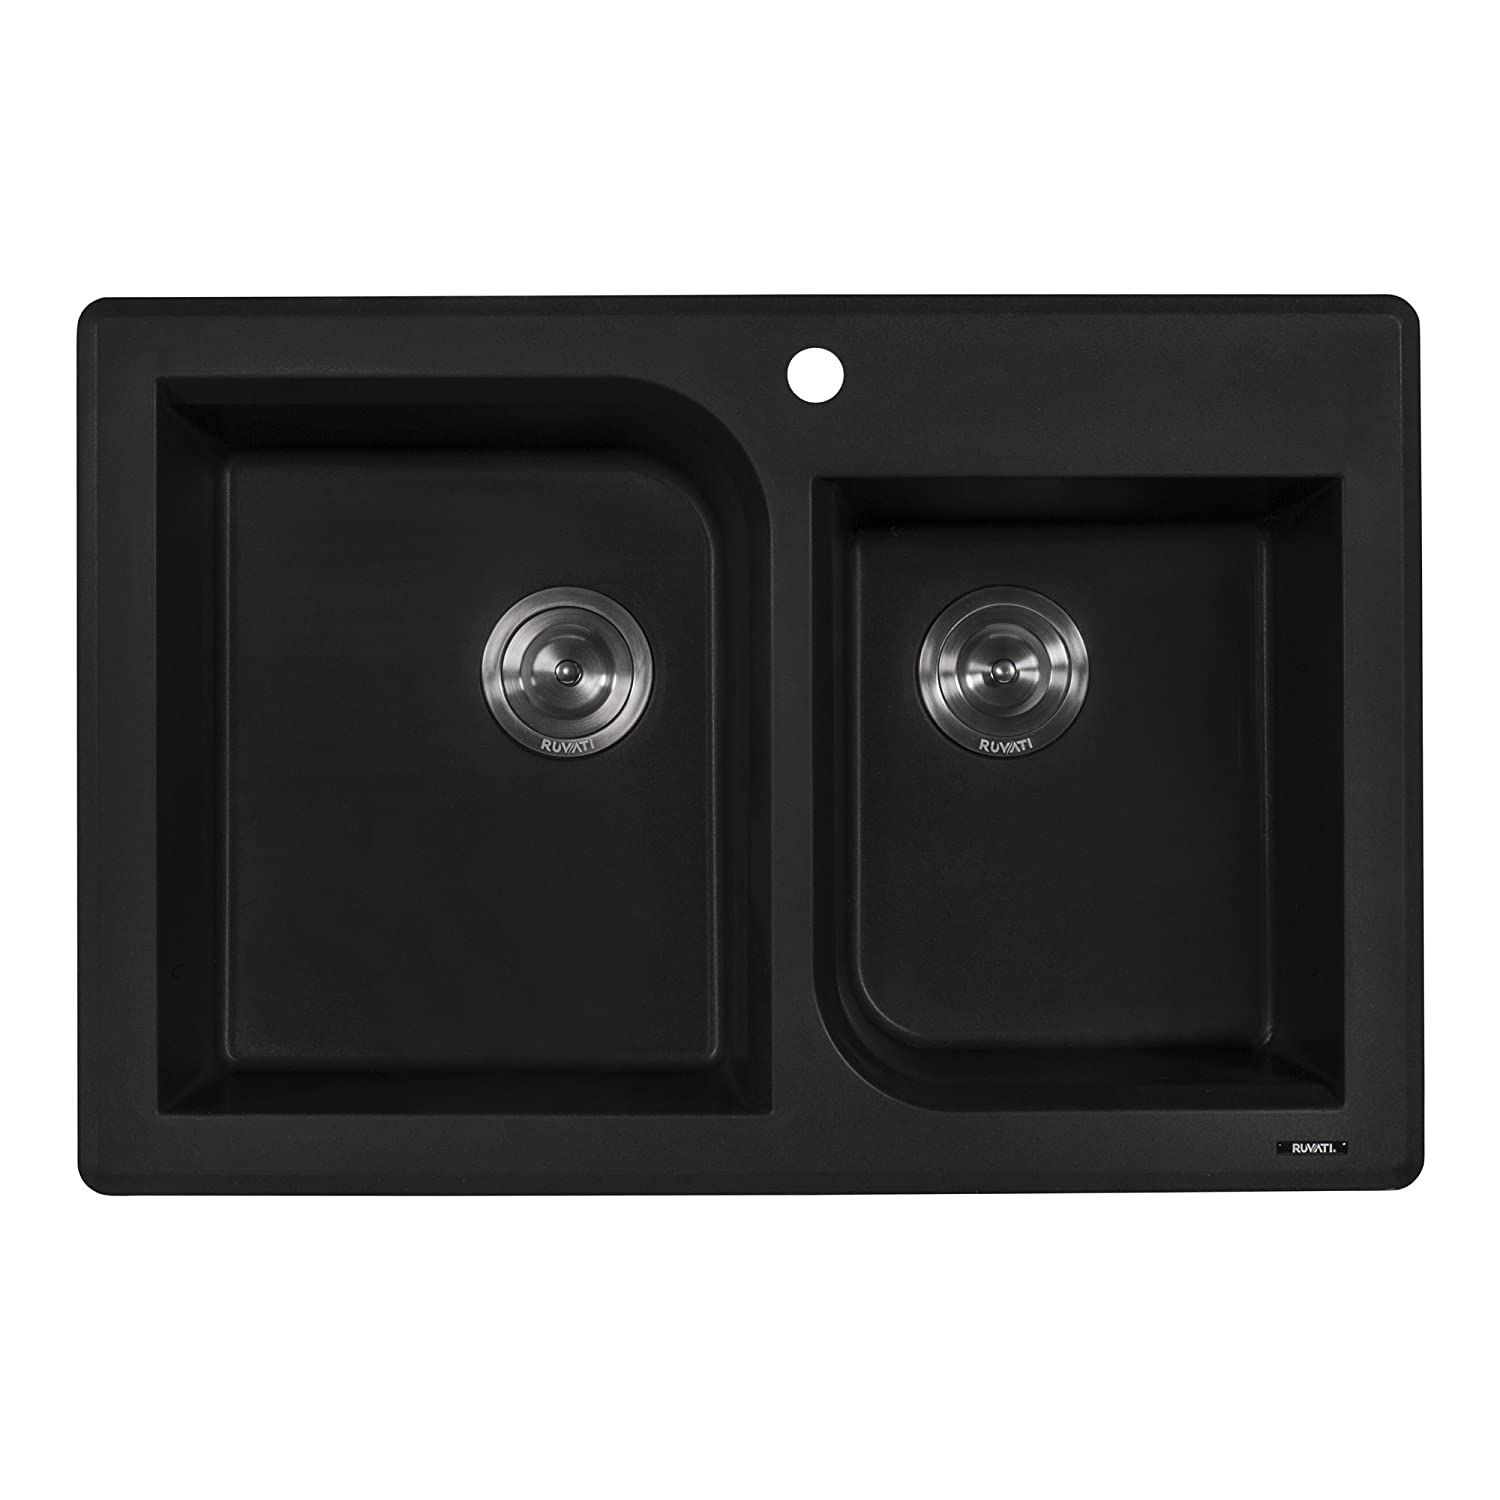 Ruvati 33 x 22 inch Dual-Mount Granite Composite Double Bowl Kitchen Sink – Midnight Black – RVG1396BK